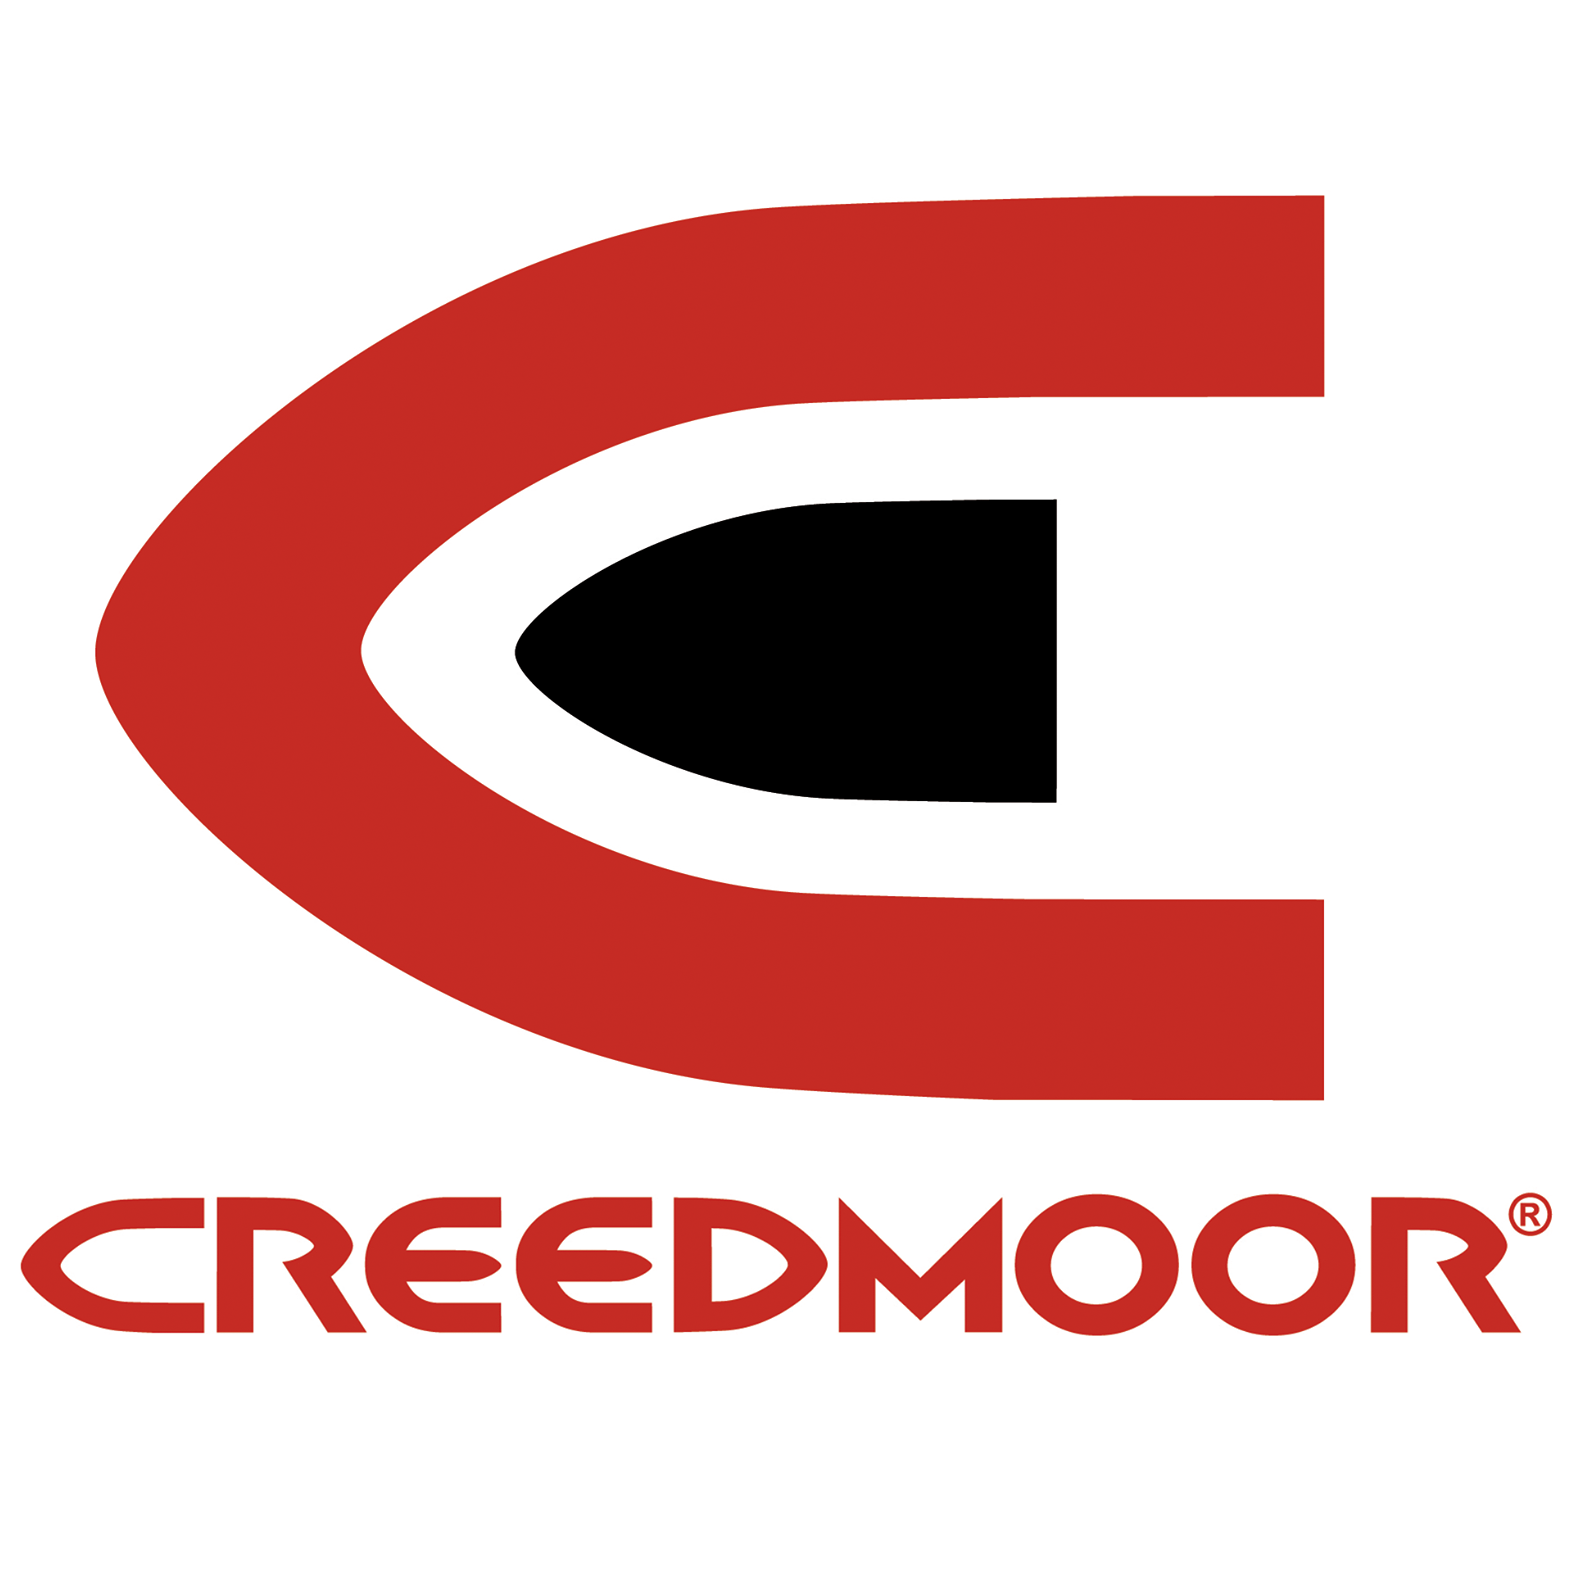 Everything Creedmoor